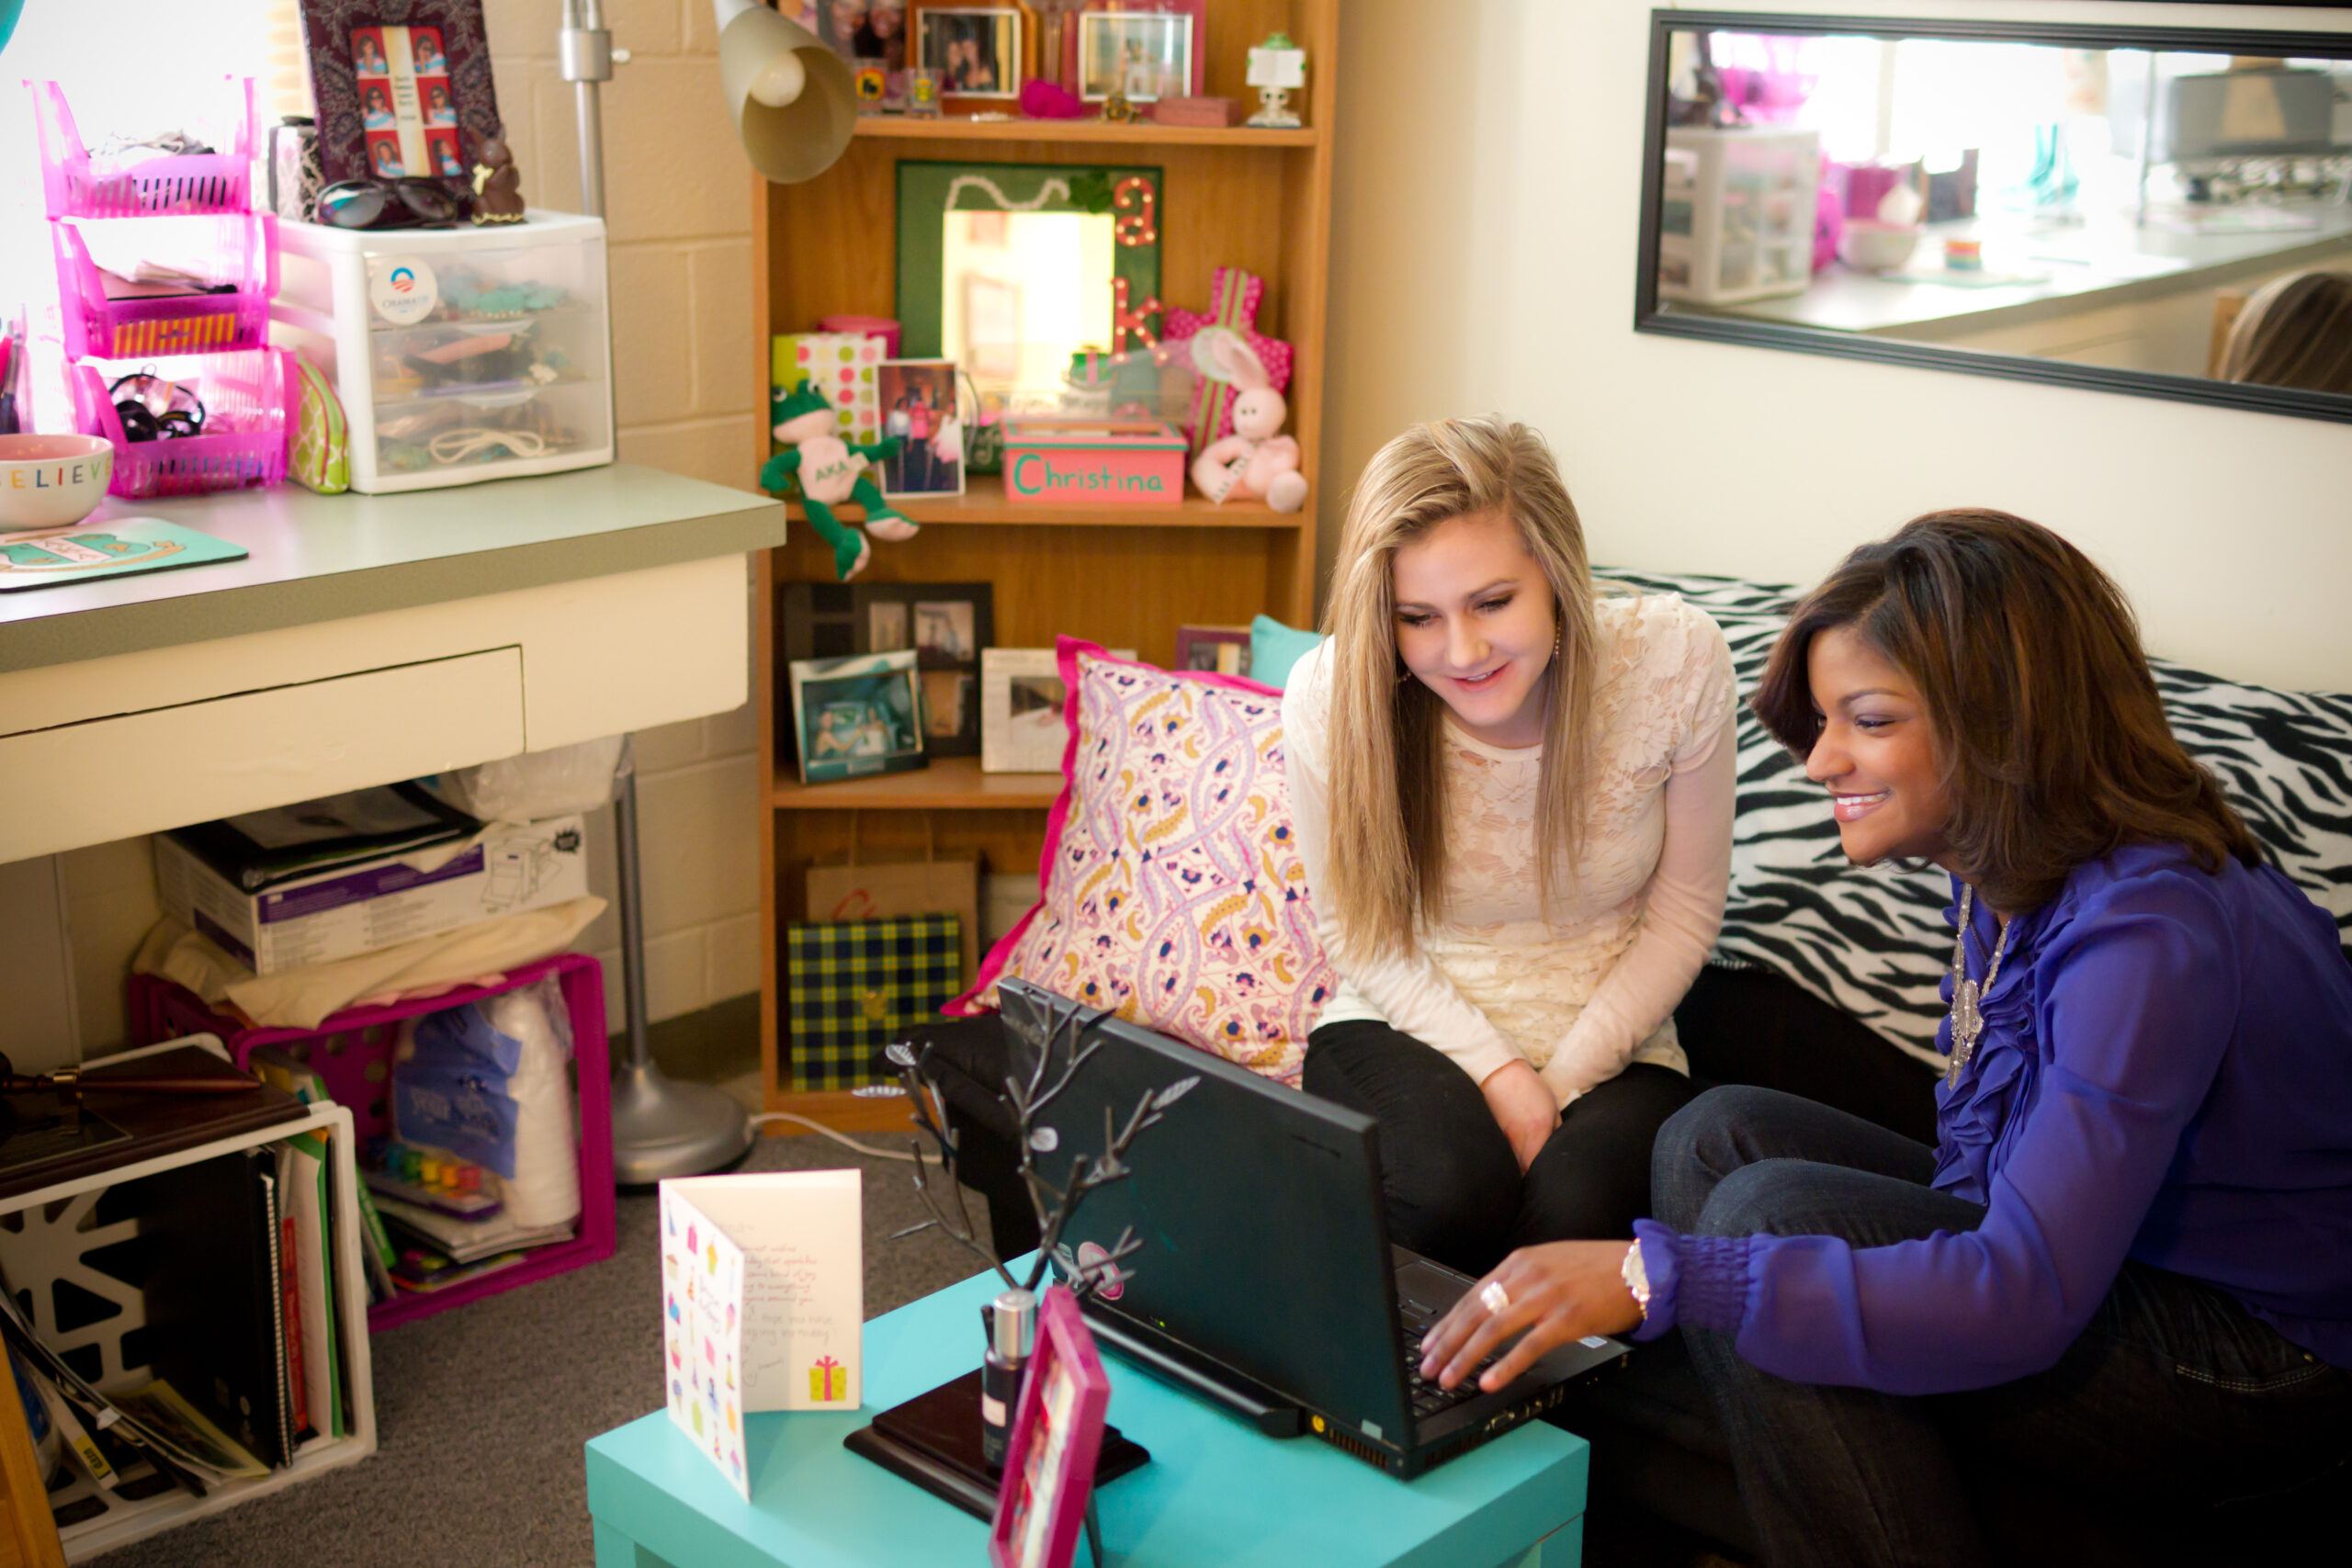 Students share a laptop on a couch inside a residence hall room.